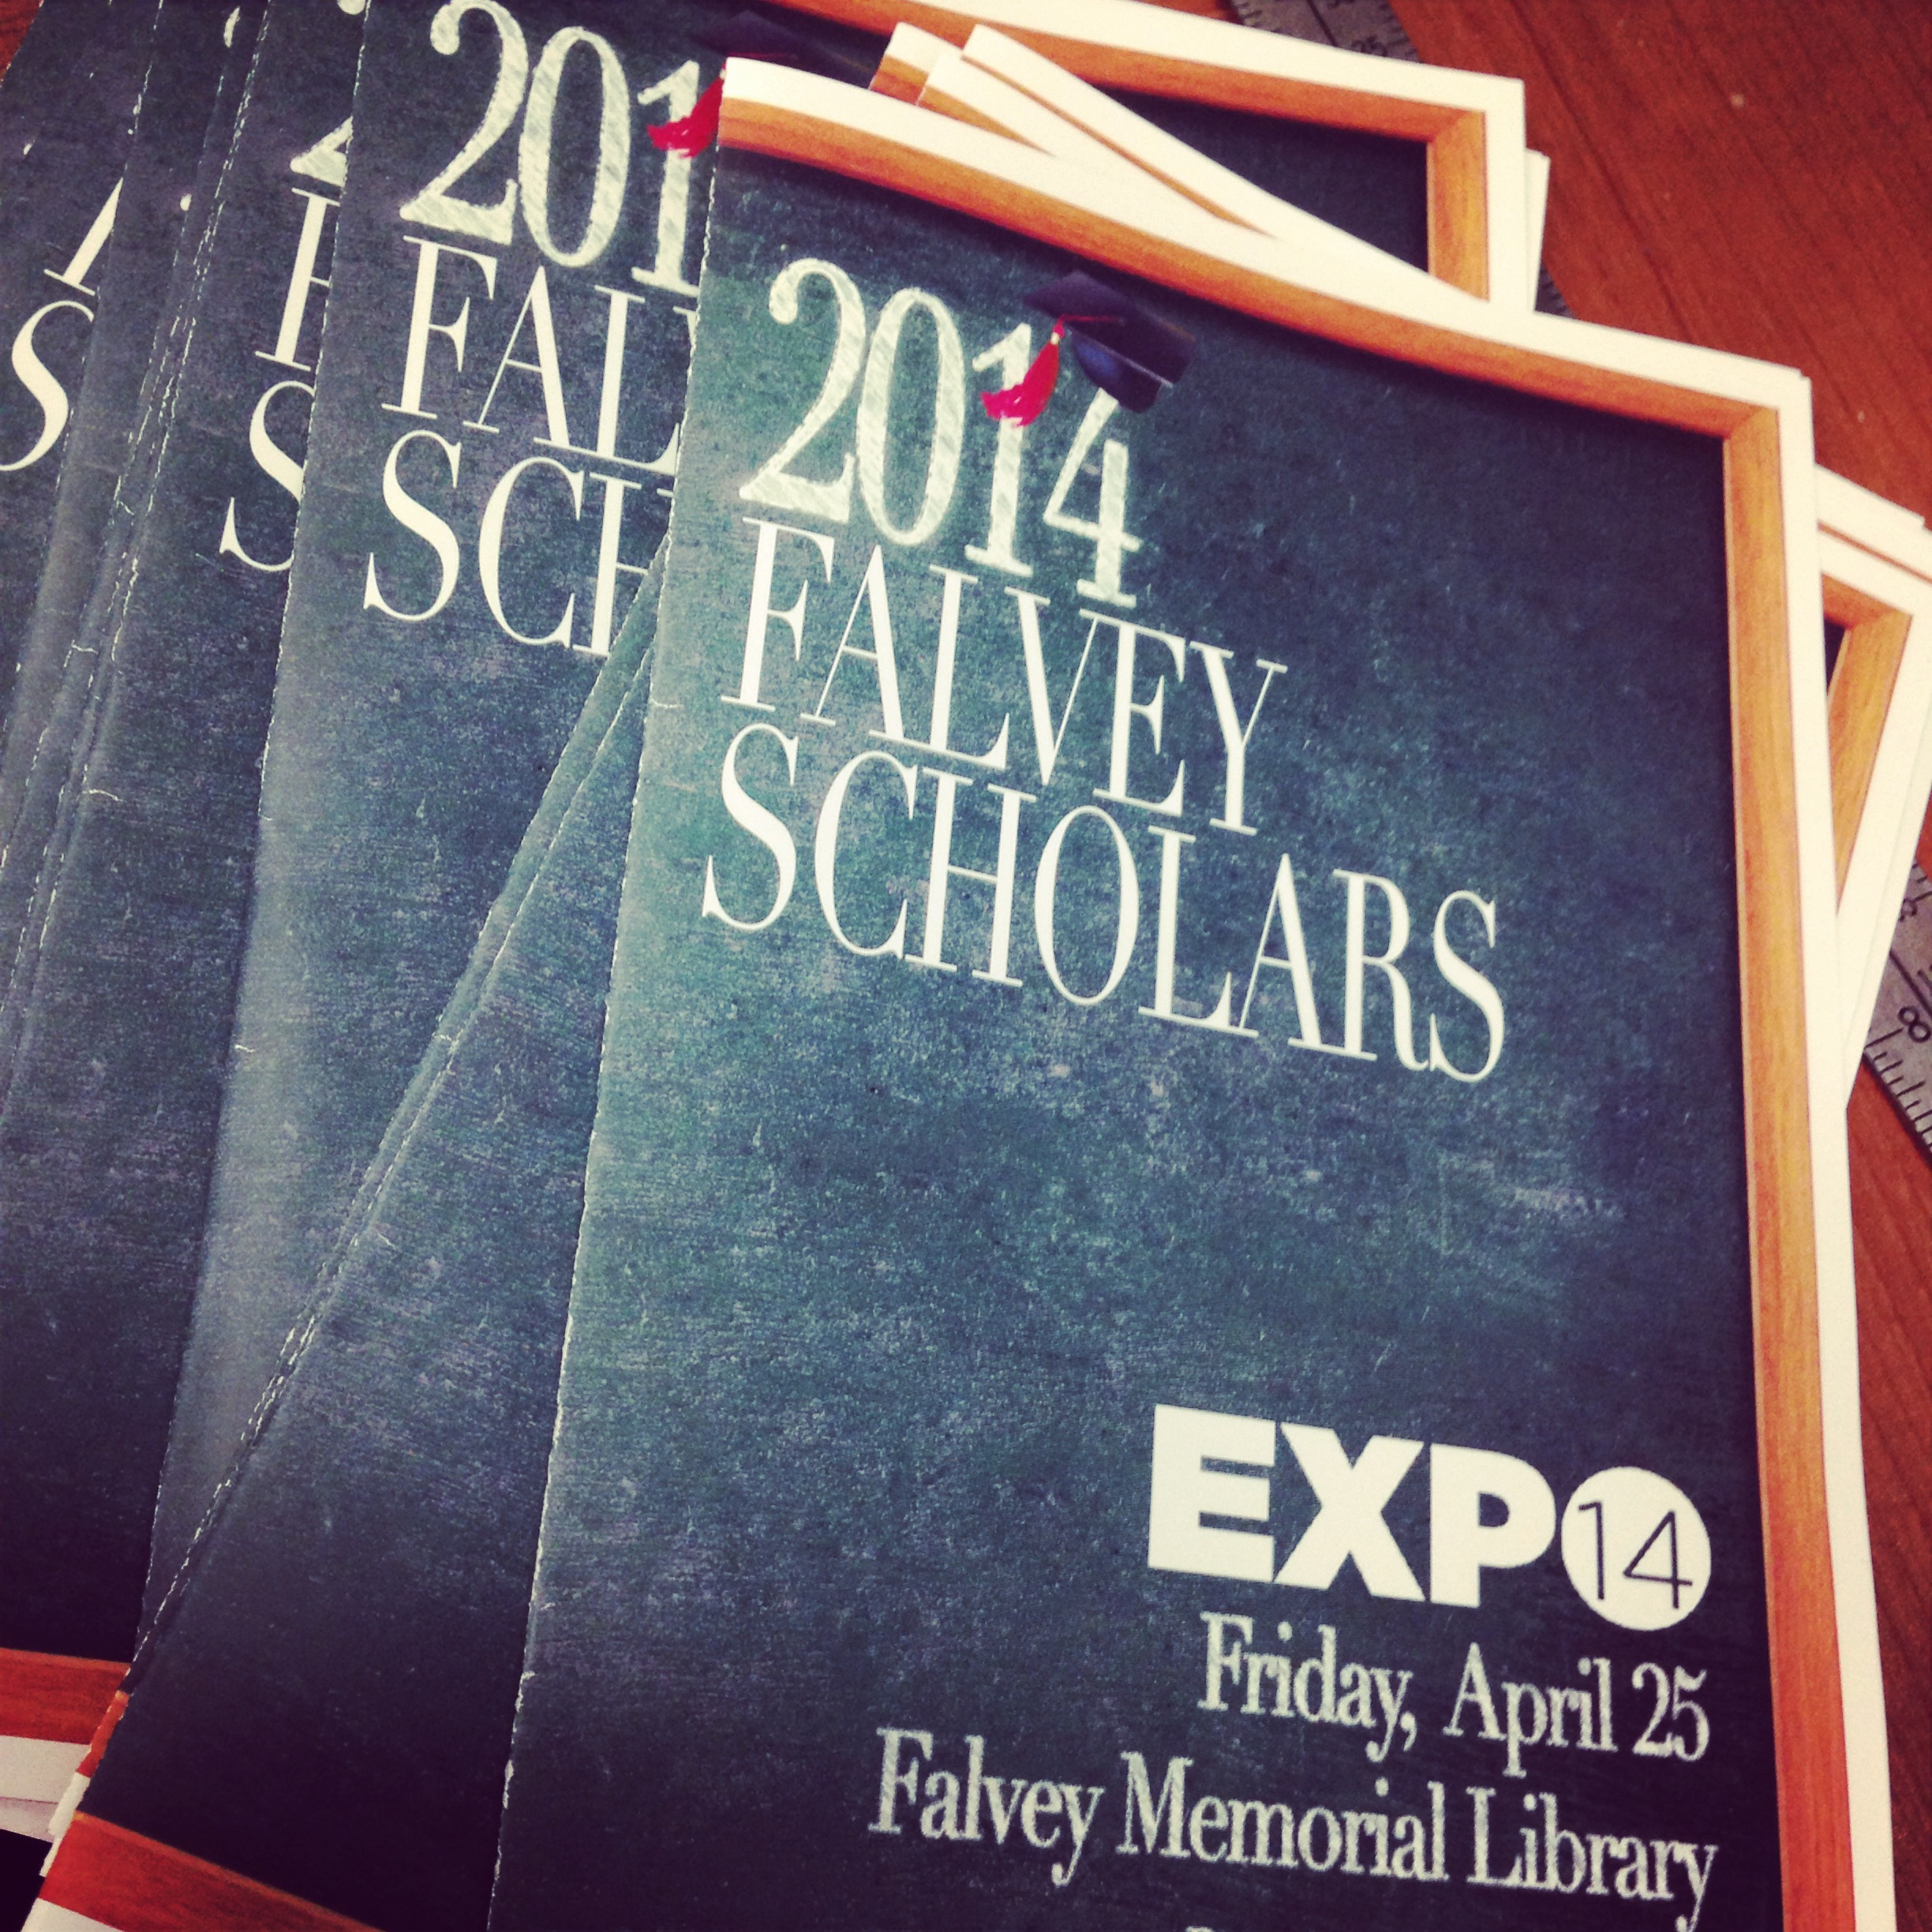 And we celebrated our Falvey Scholars